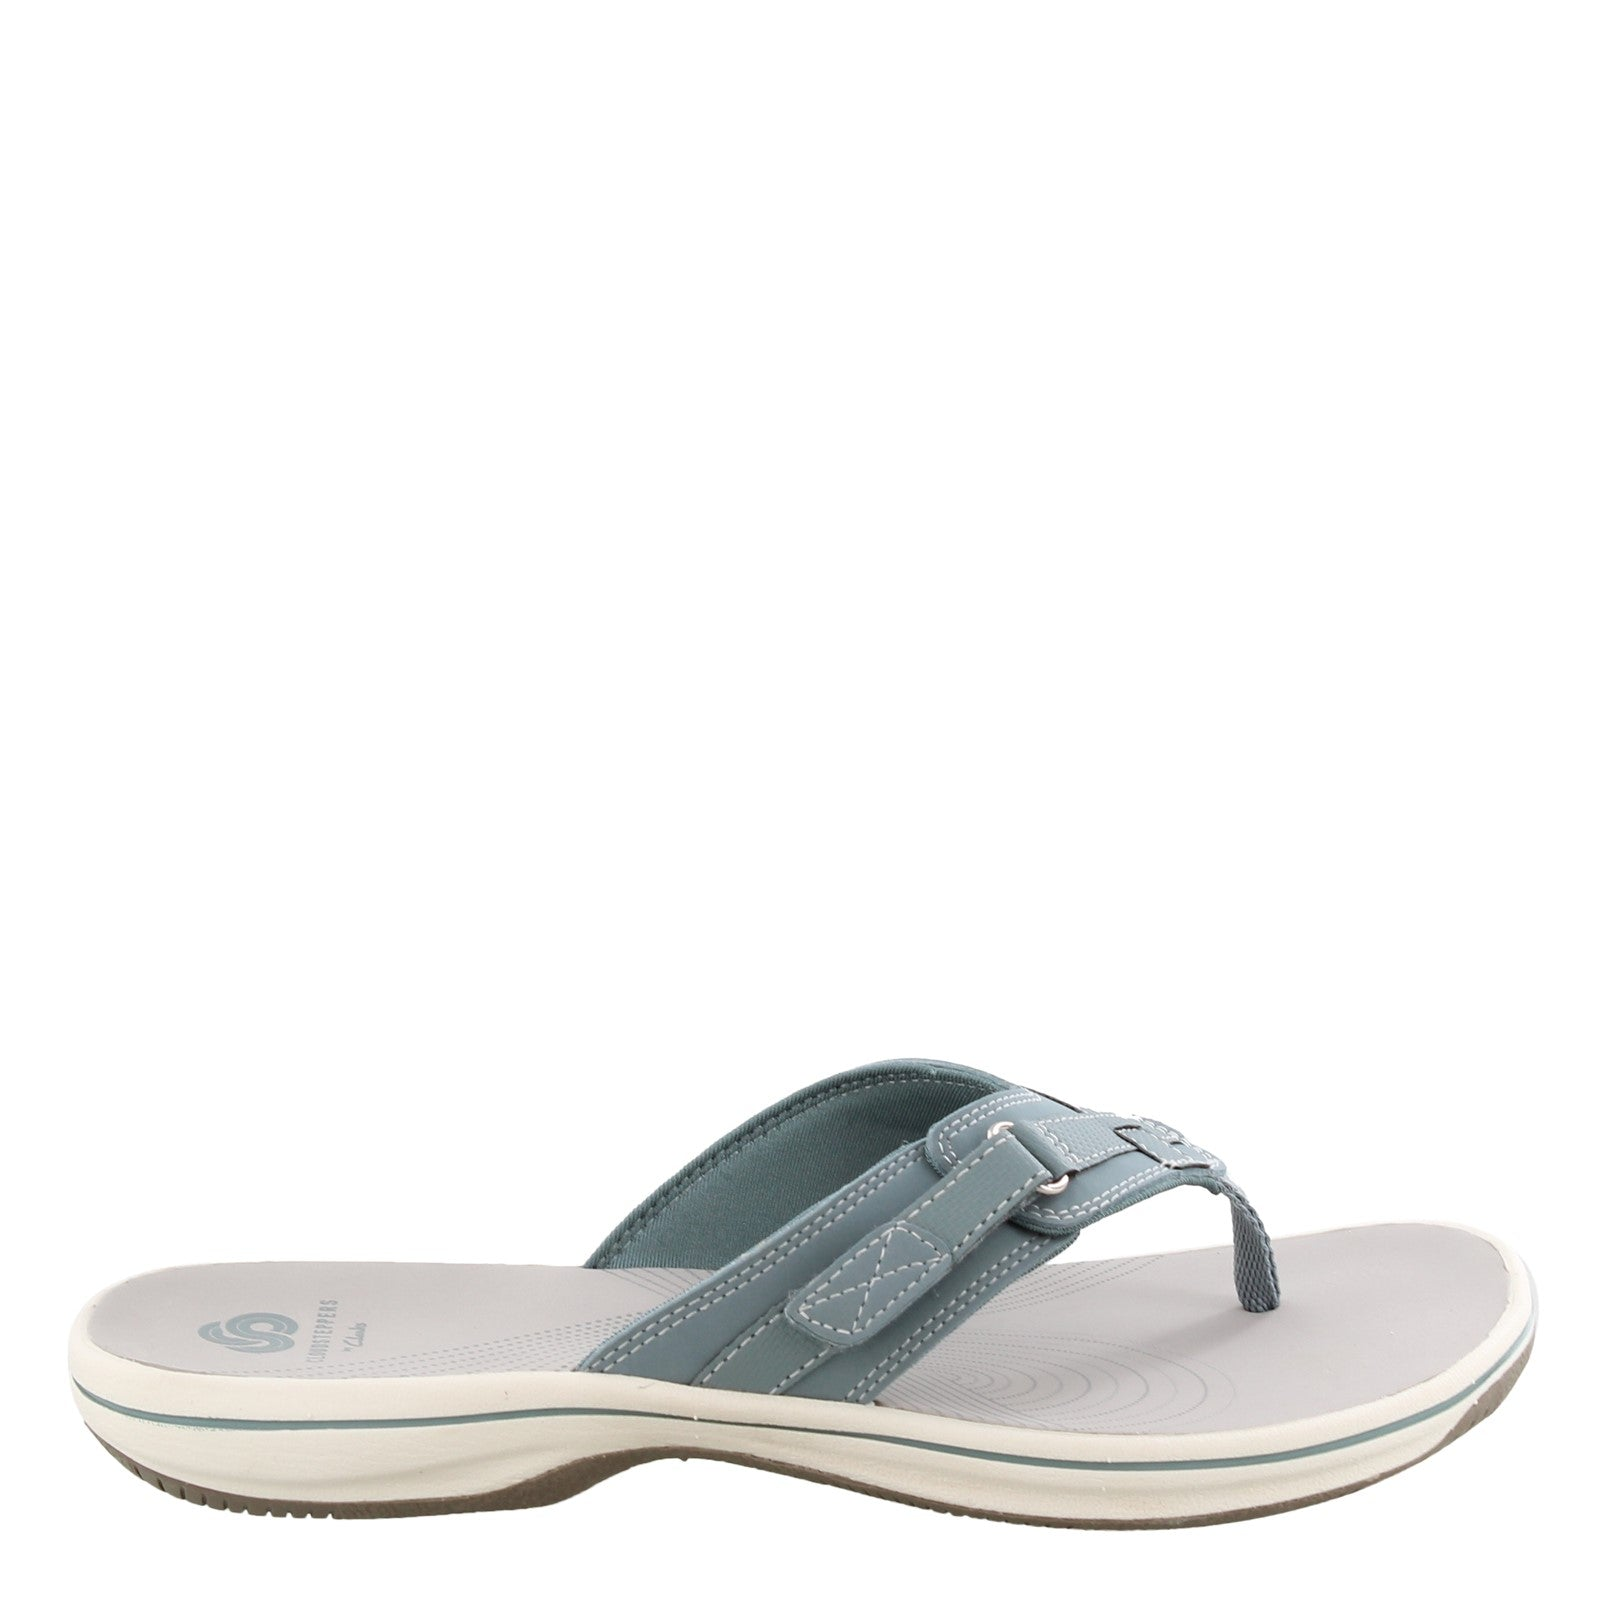 CLARKS LADIES BREEZE SEA BLUE GREY SANDAL